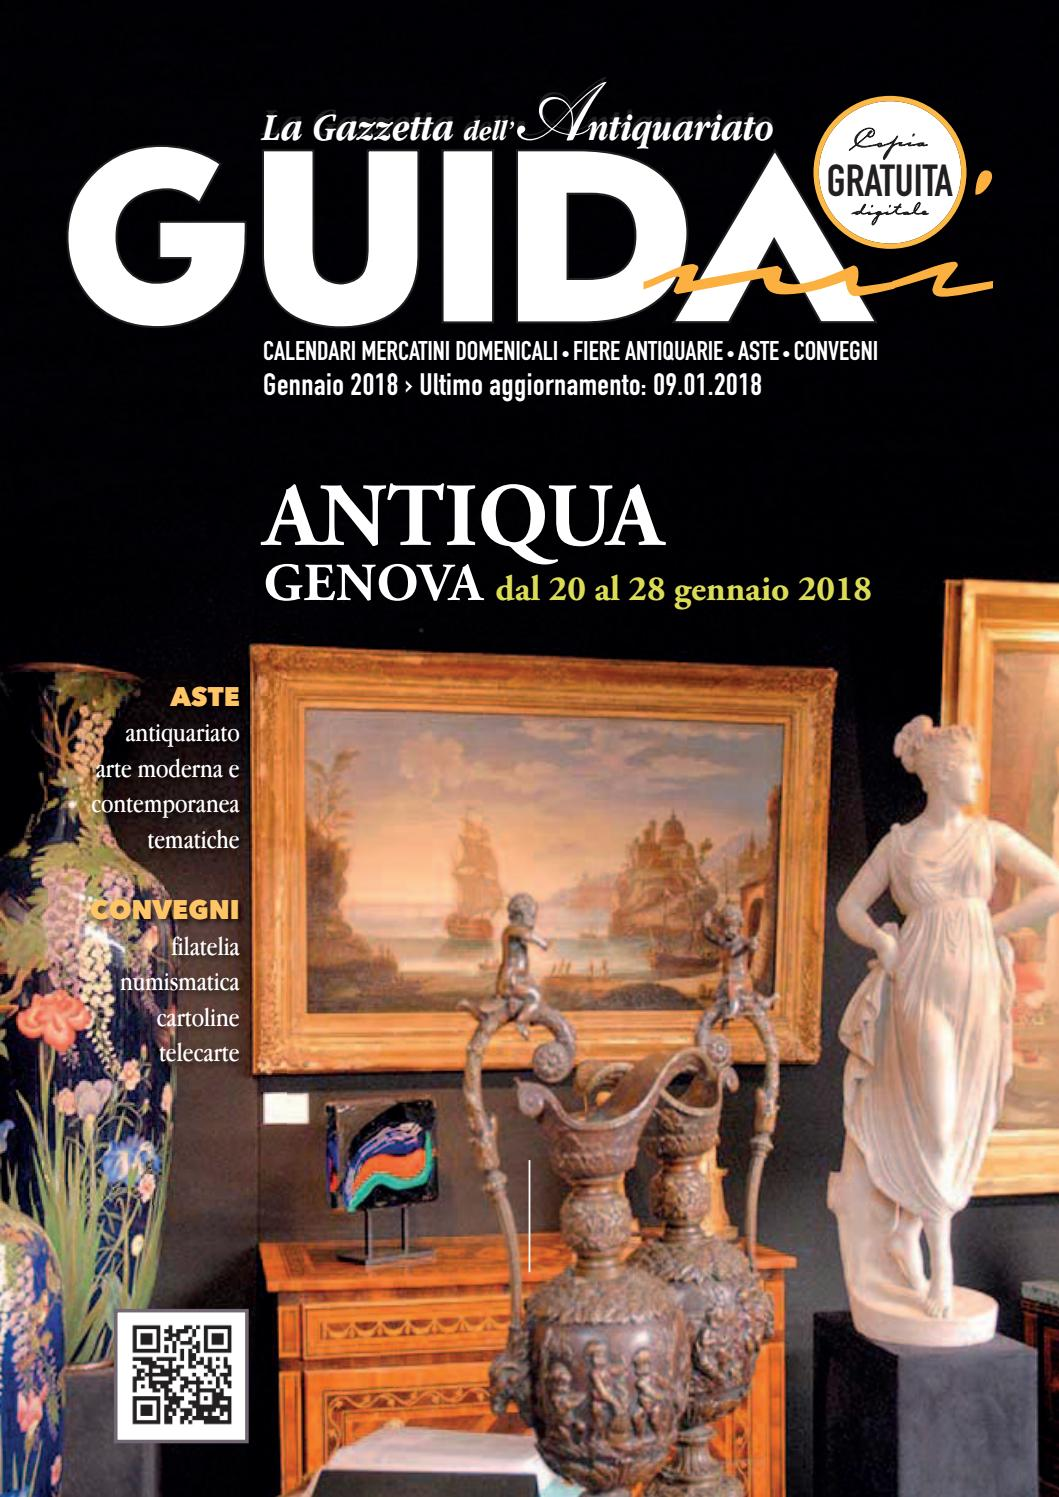 Calendario Aste Antiquariato Italia.Guidami Gennaio 2018 By La Gazzetta Dell Antiquariato Issuu